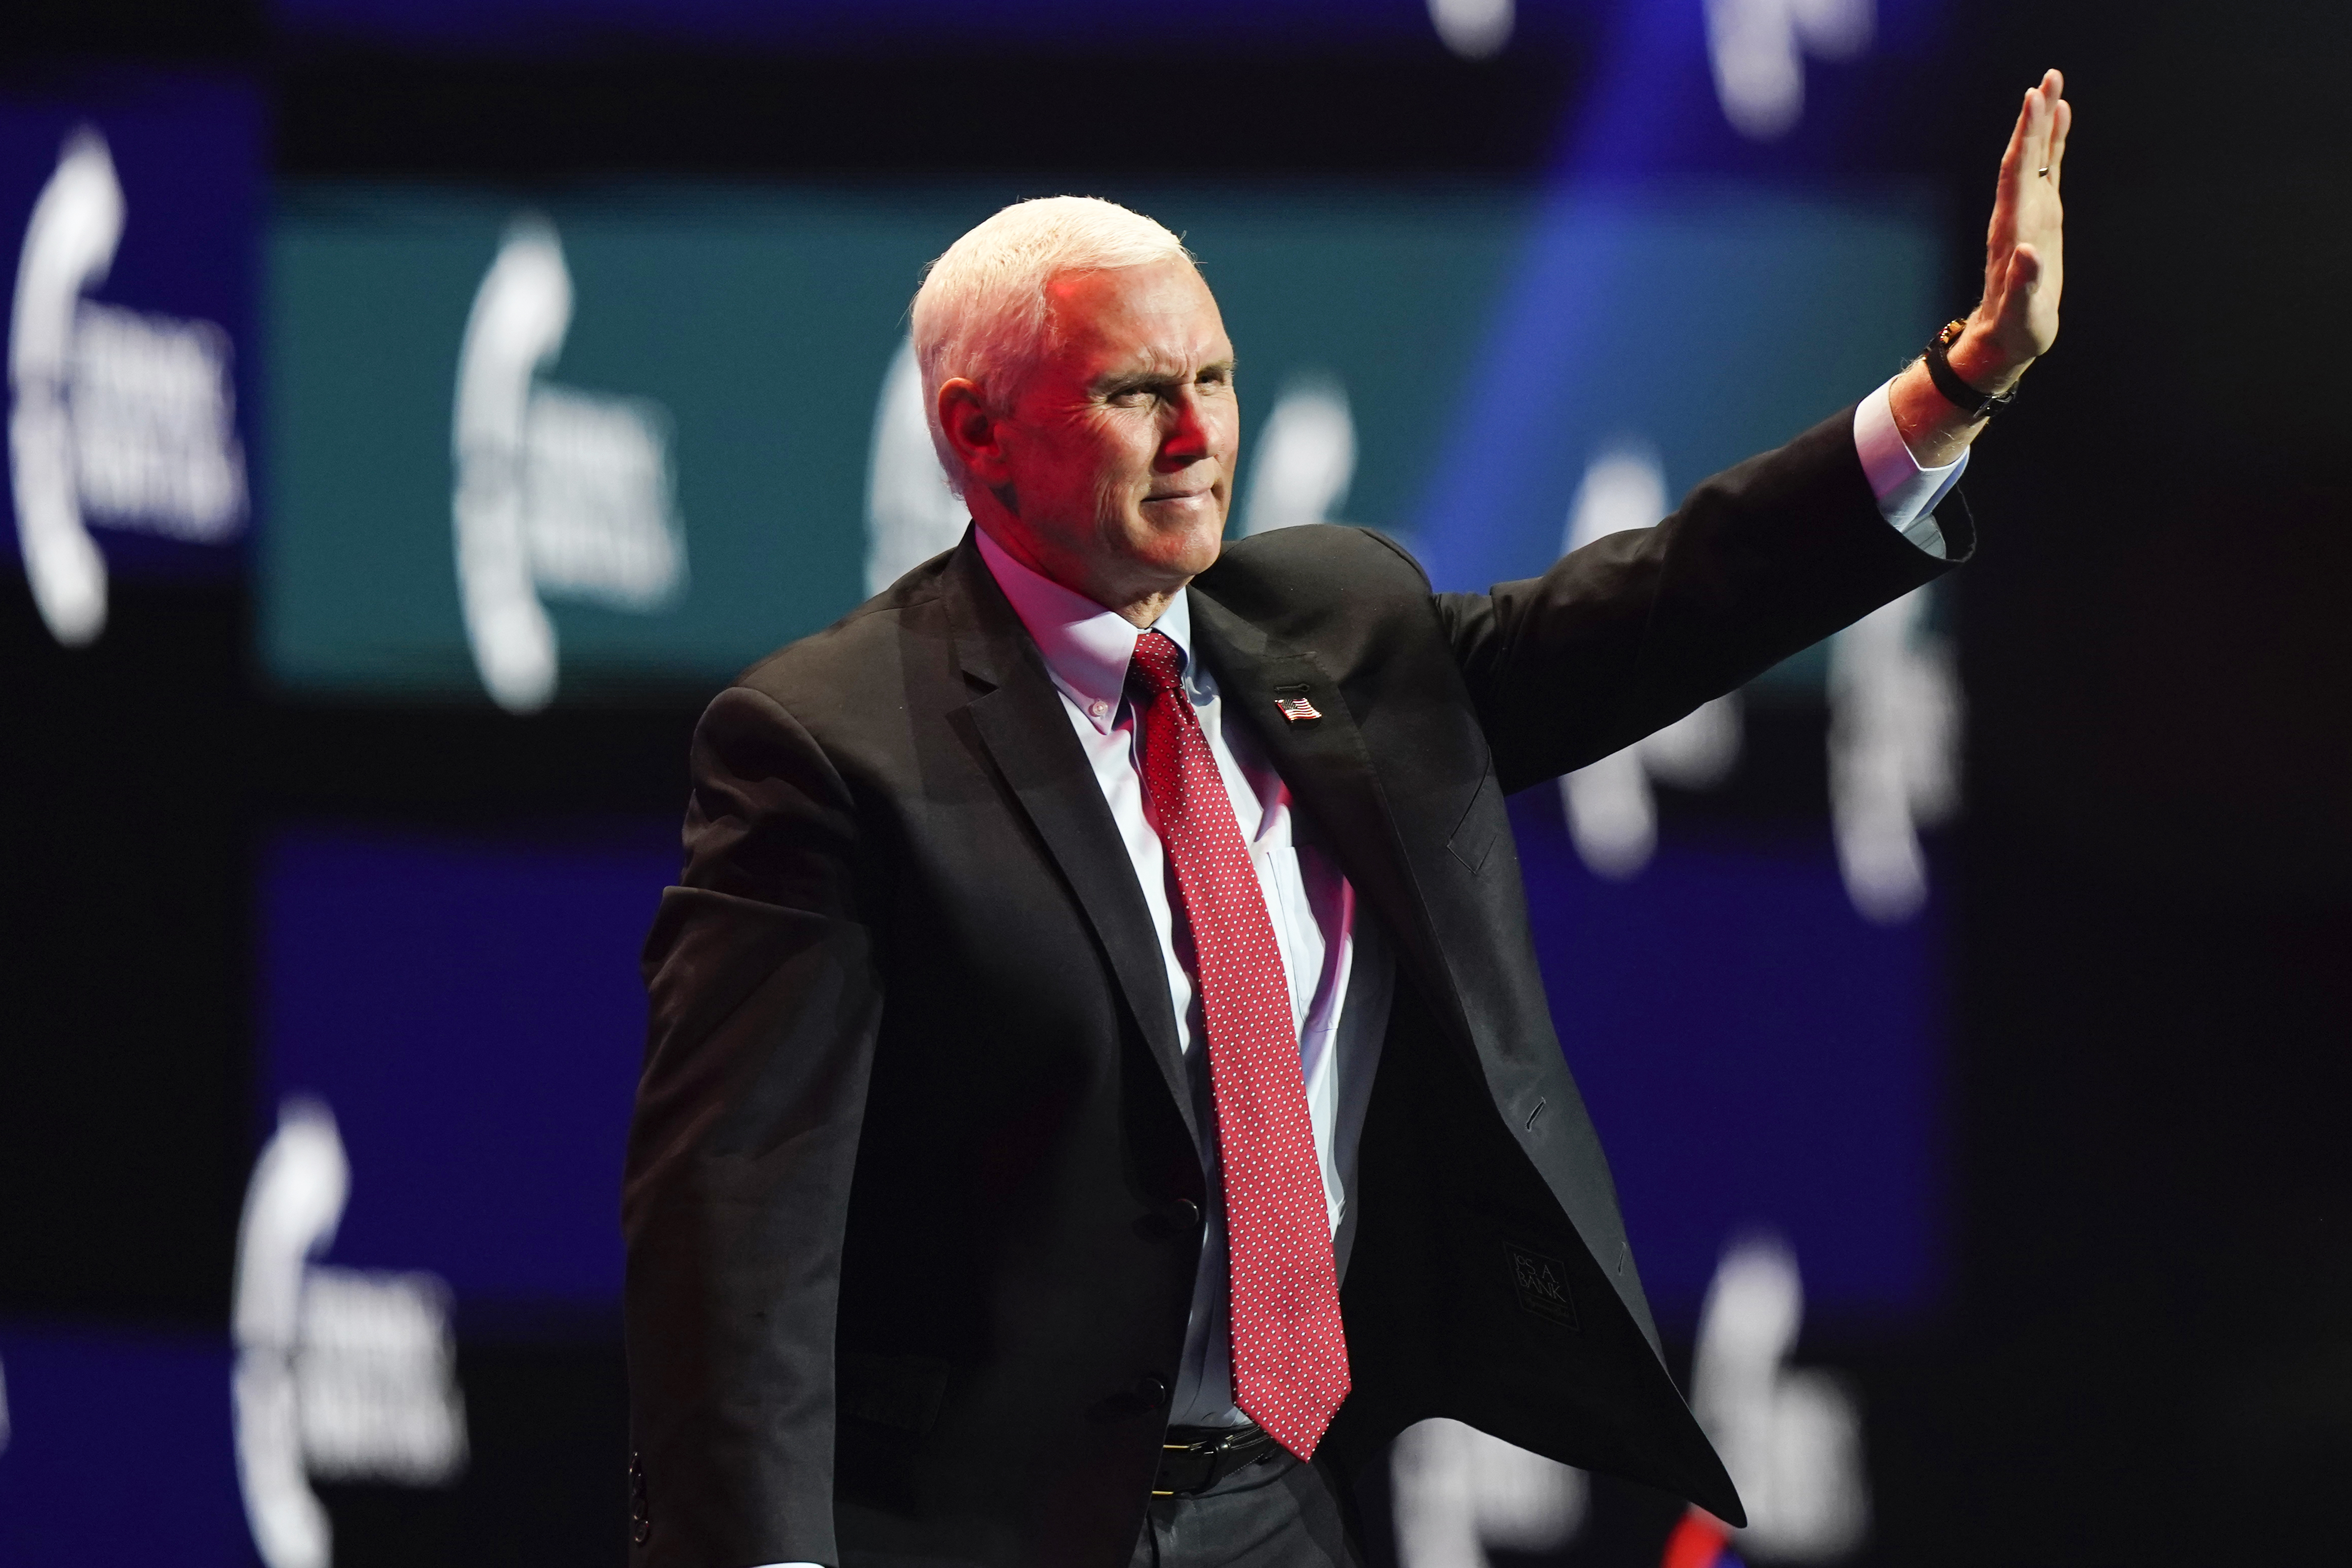 Vice President Mike Pence waves as he walks off the stage after speaking at the Turning Point USA Student Action Summit, Tuesday, Dec. 22, 2020, in West Palm Beach, Fla.